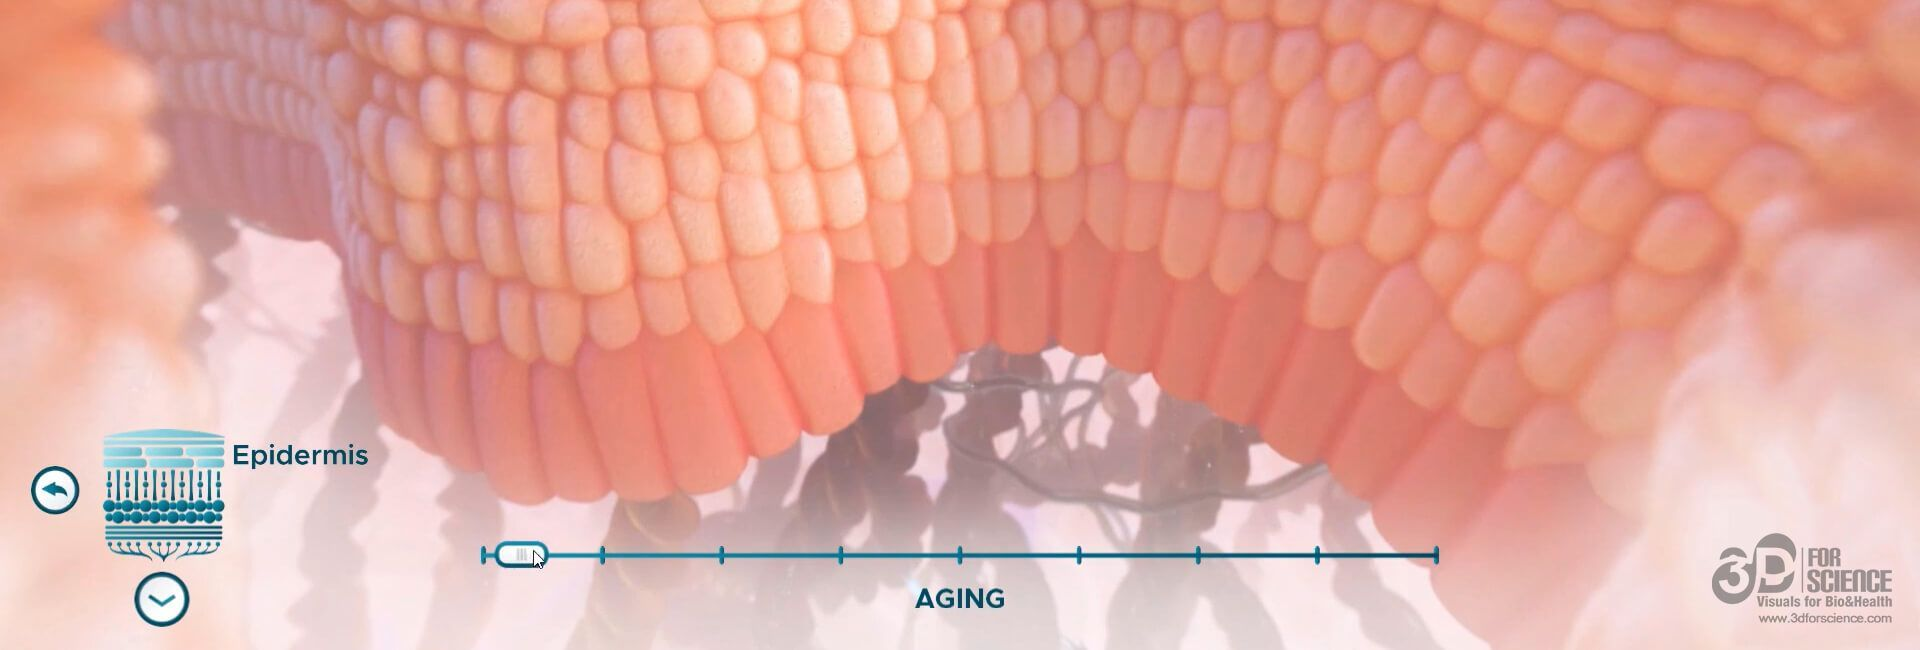 image of epidermis in a visual of elearning medical design